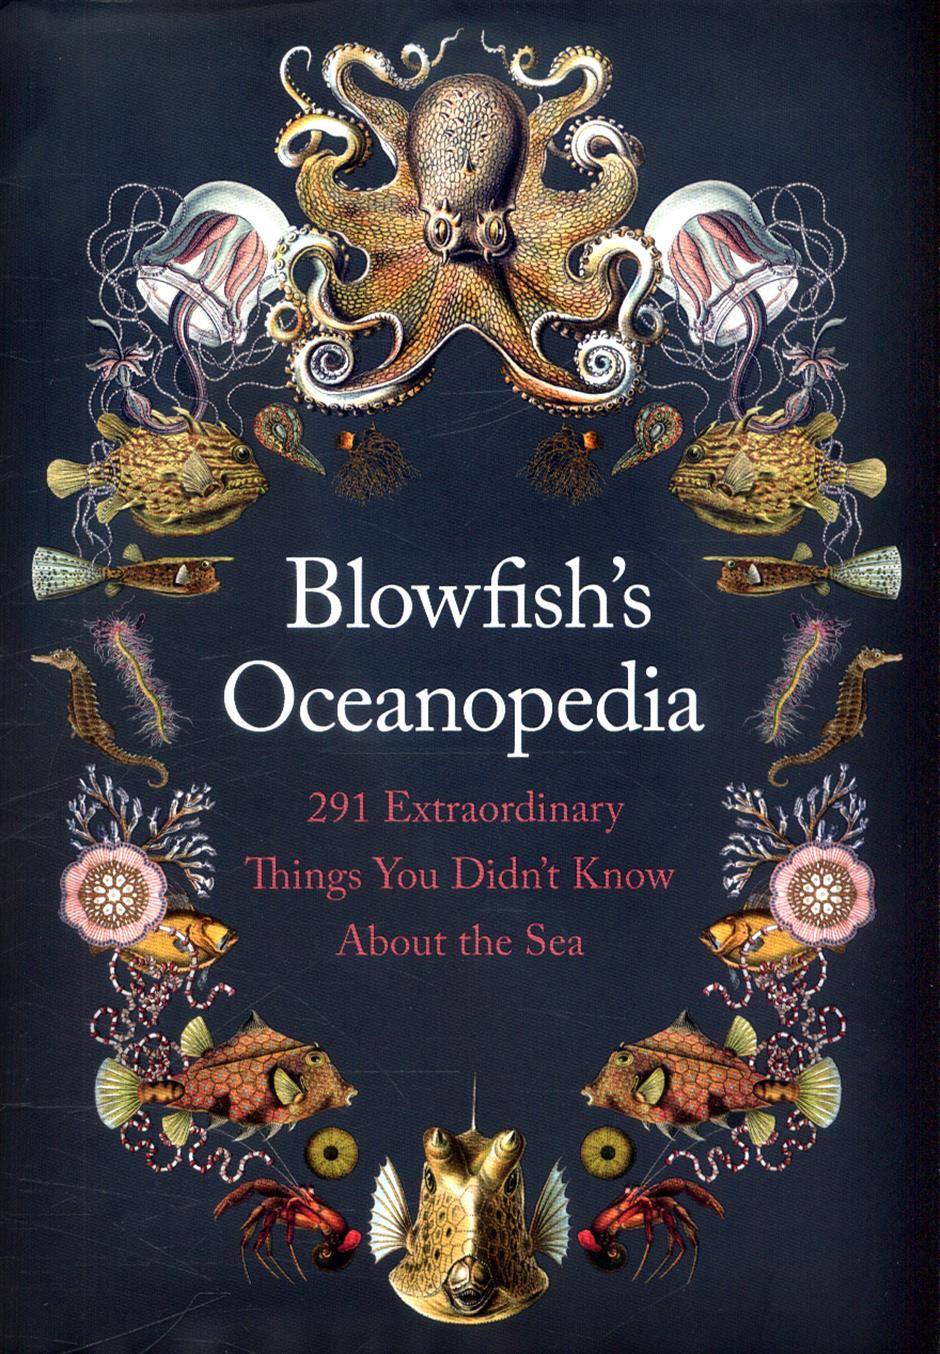 Oceanopedia: 291 Extraordinary Things You Didn't Know about the Sea